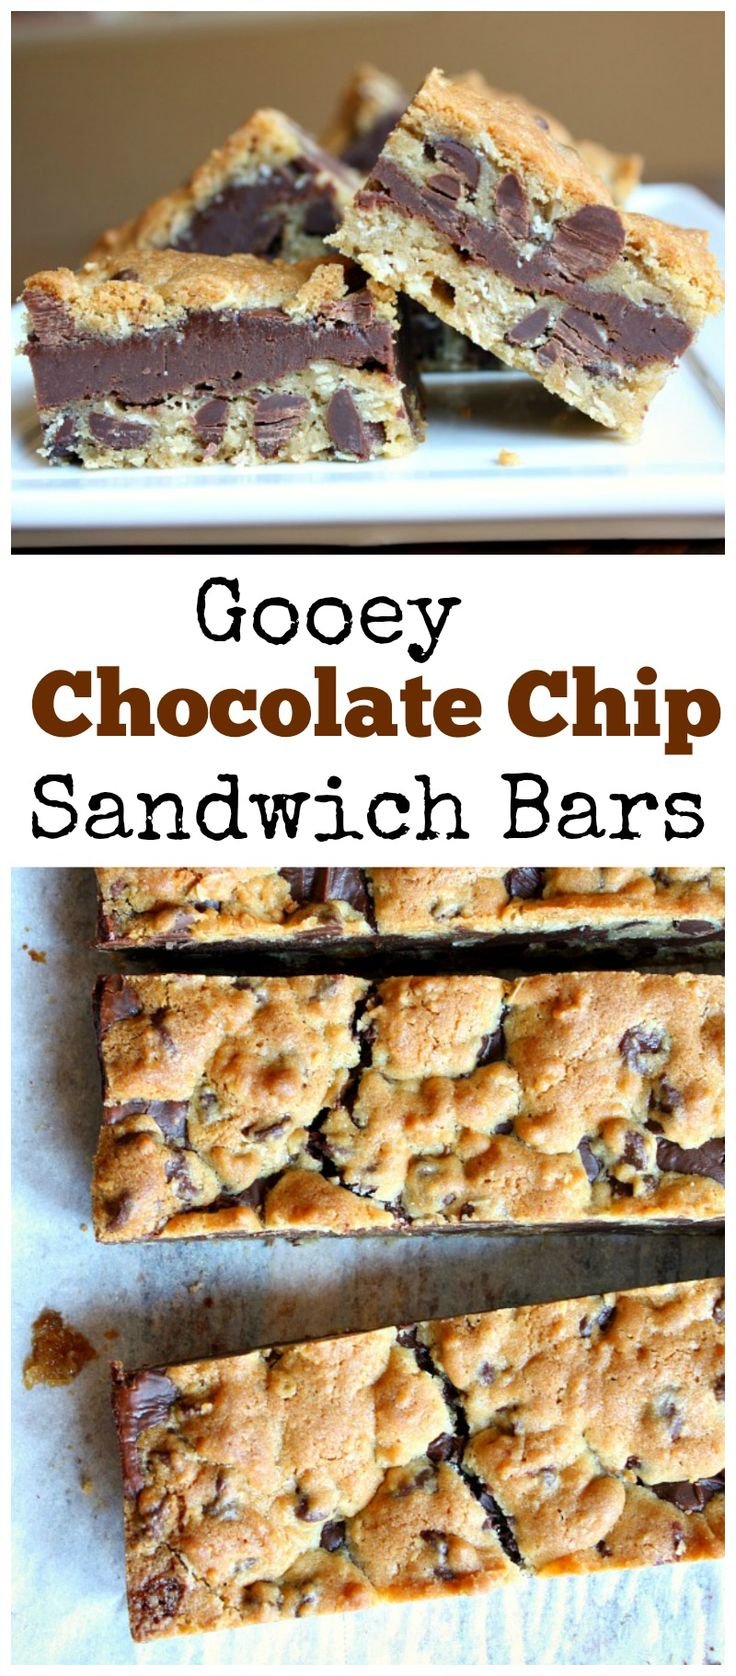 Gooey Chocolate Chip Sandwich Bars:  a family favorite dessert recipe for so many years now!